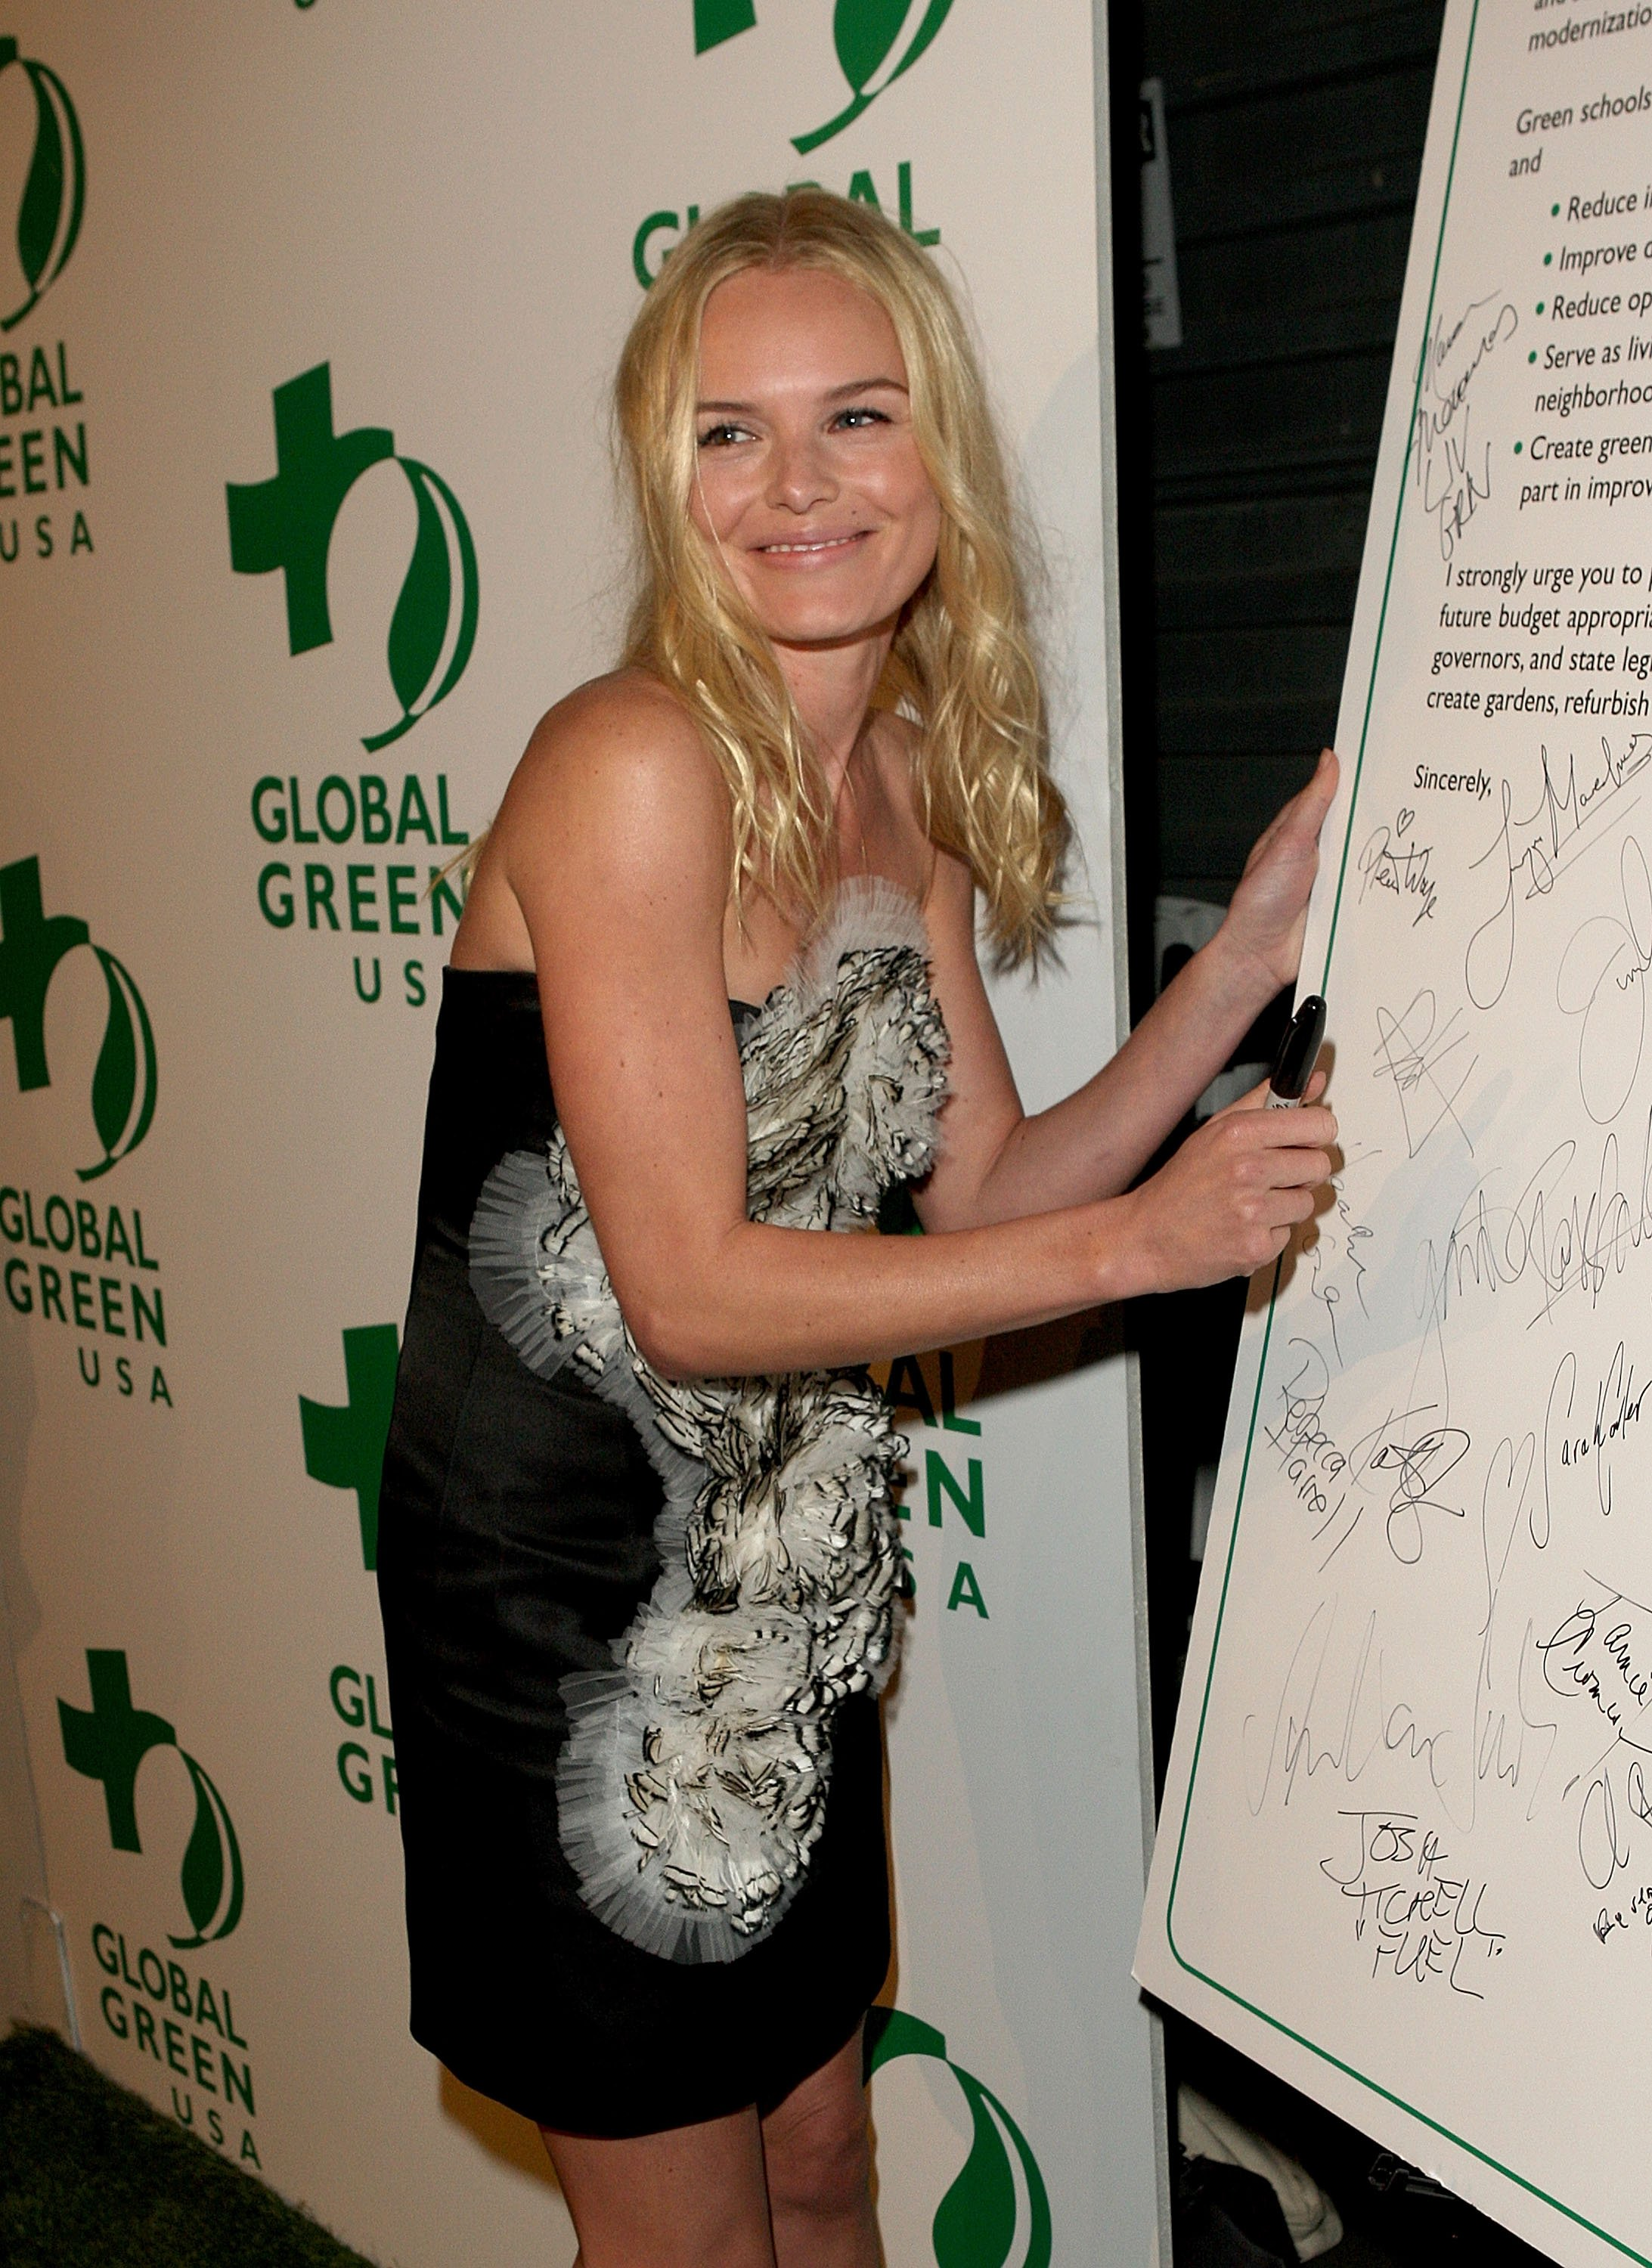 13018_Celebutopia-Kate_Bosworth_arrives_at_Global_Green_USA97s_6th_Annual_Pre-Oscar_Party-09_122_228lo.jpg